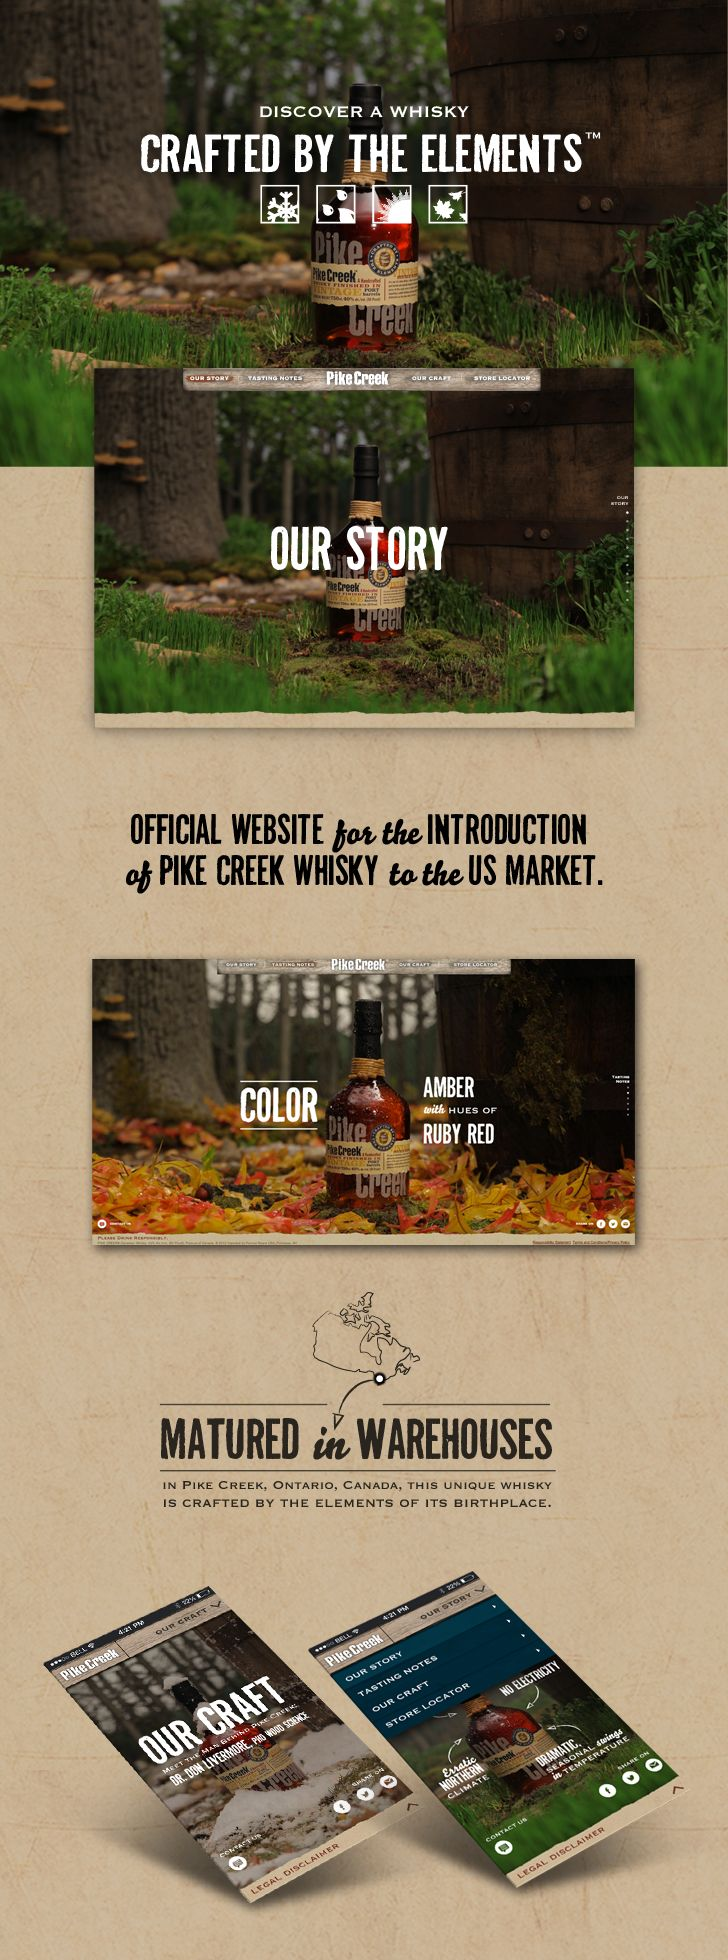 Pikecreek Promotional Website 2013